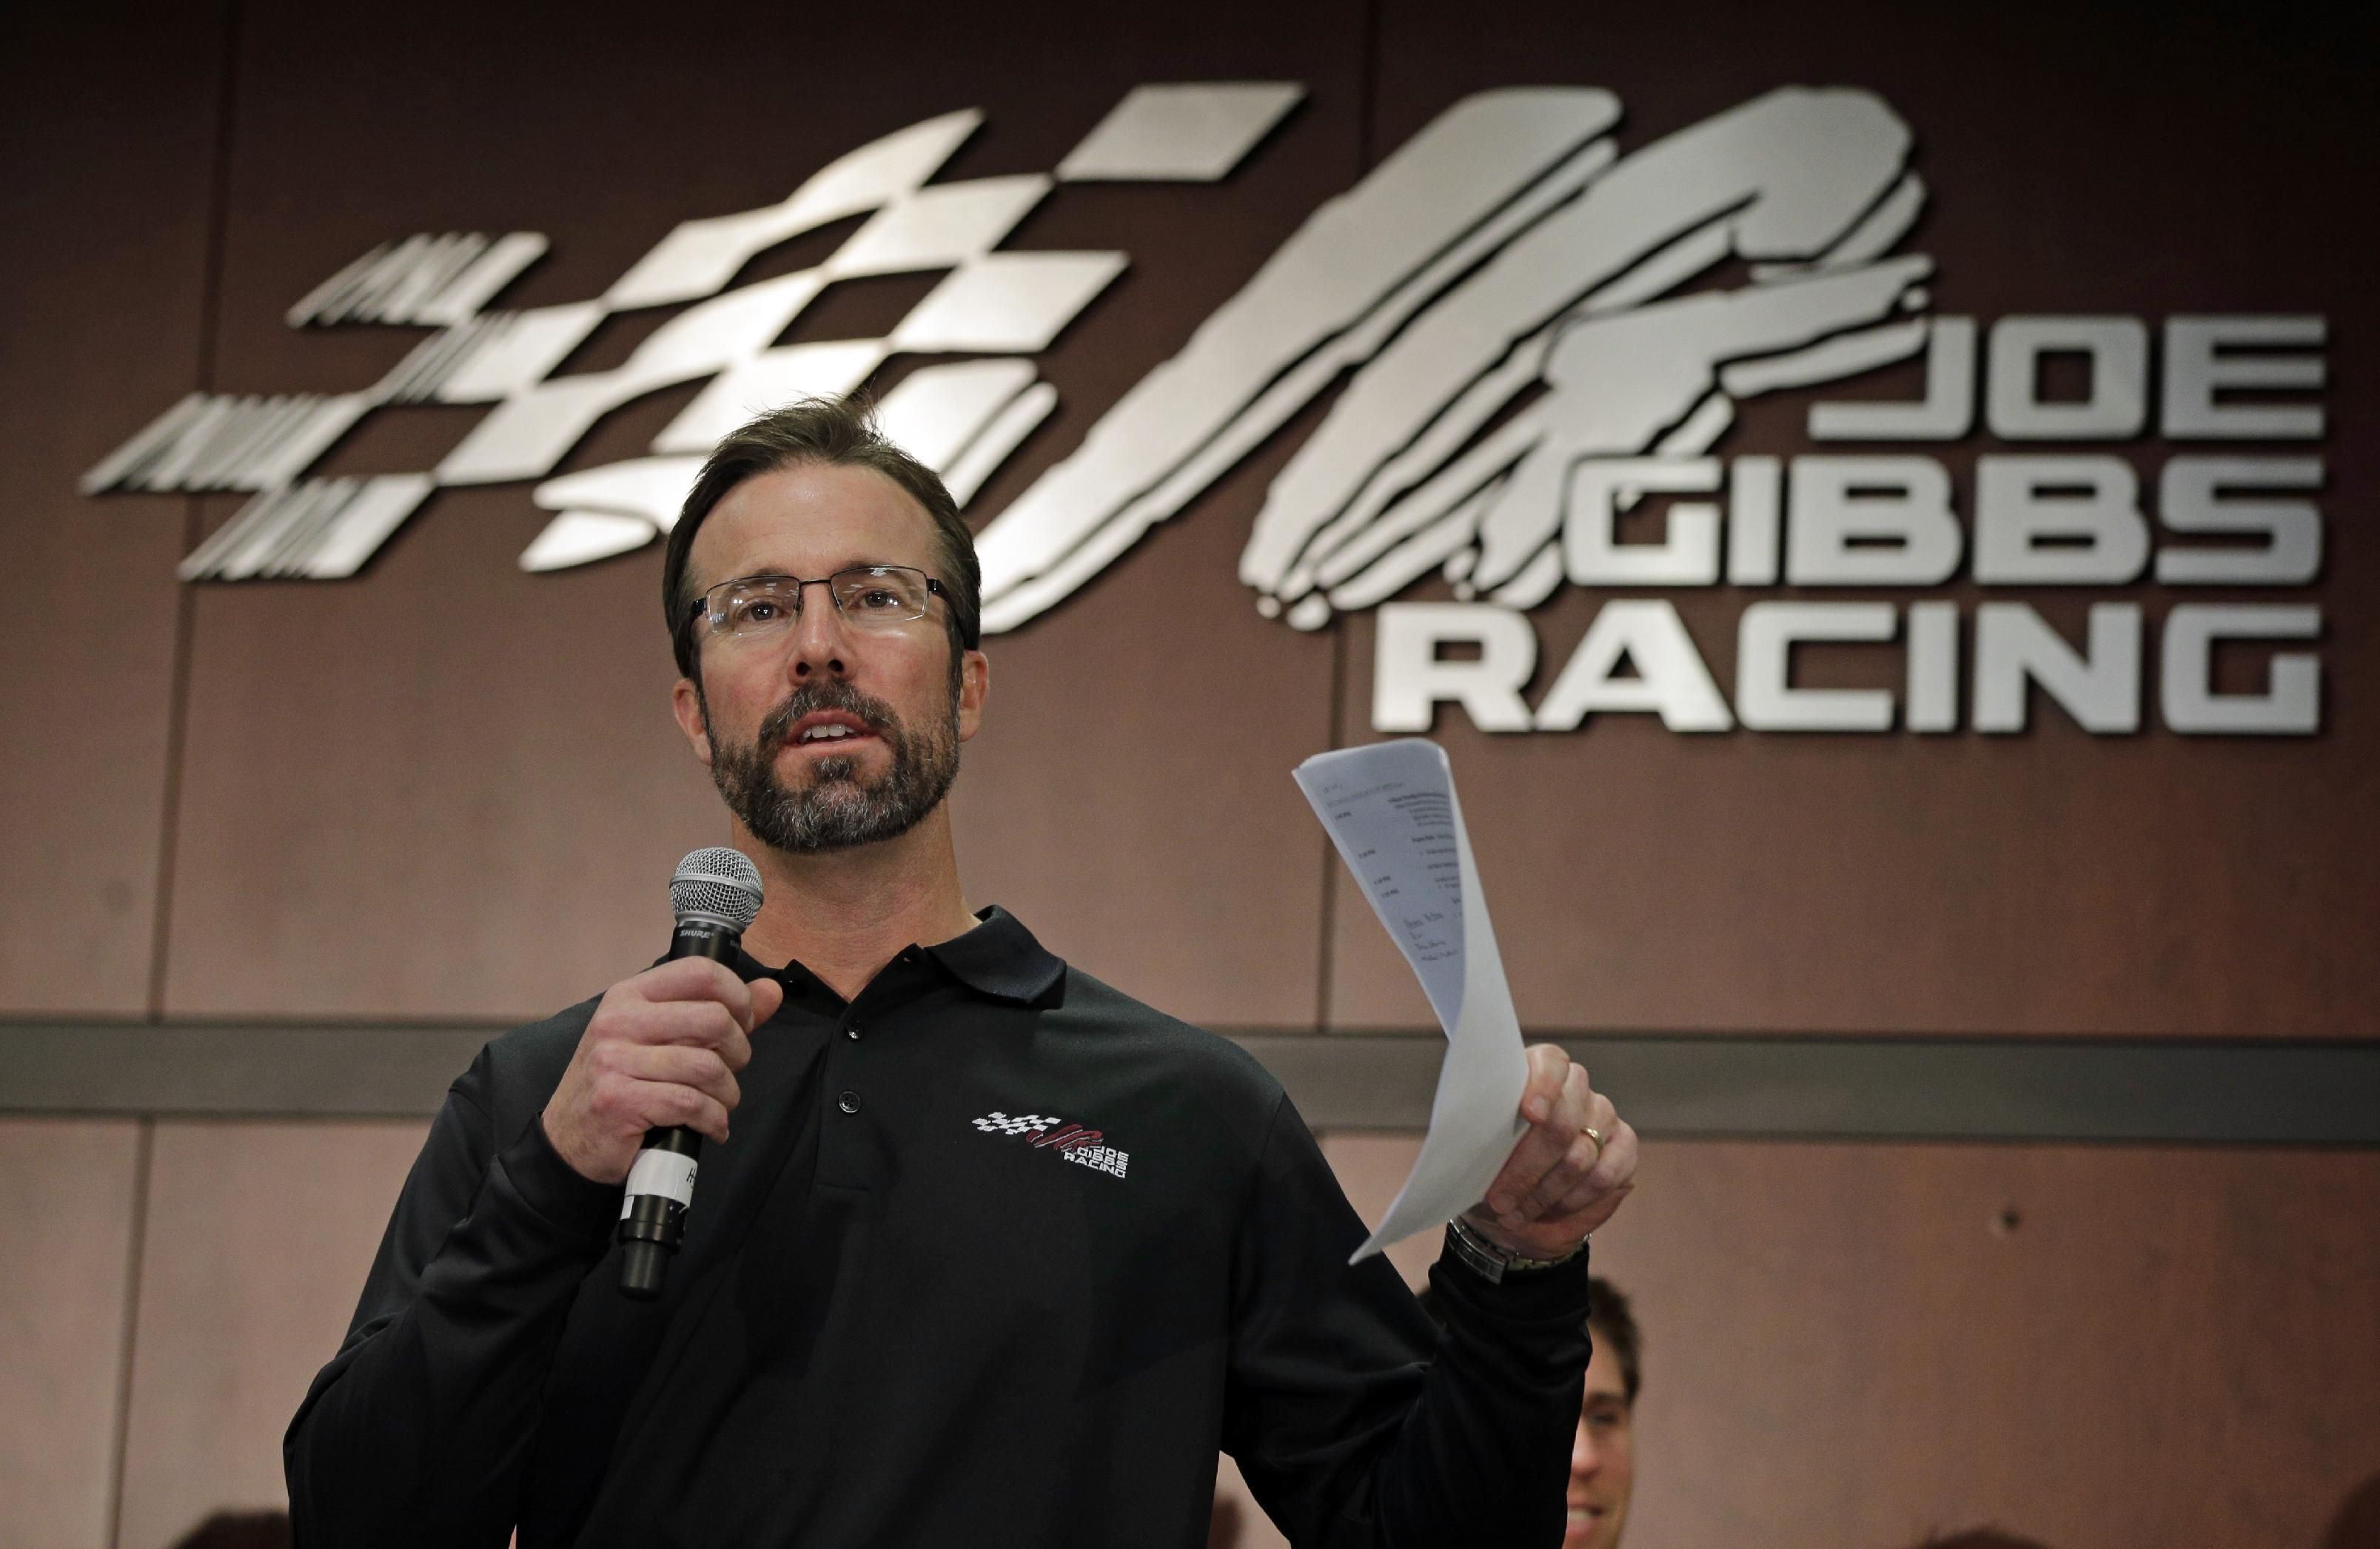 JGR announces J.D. Gibbs getting treatment for brain issues